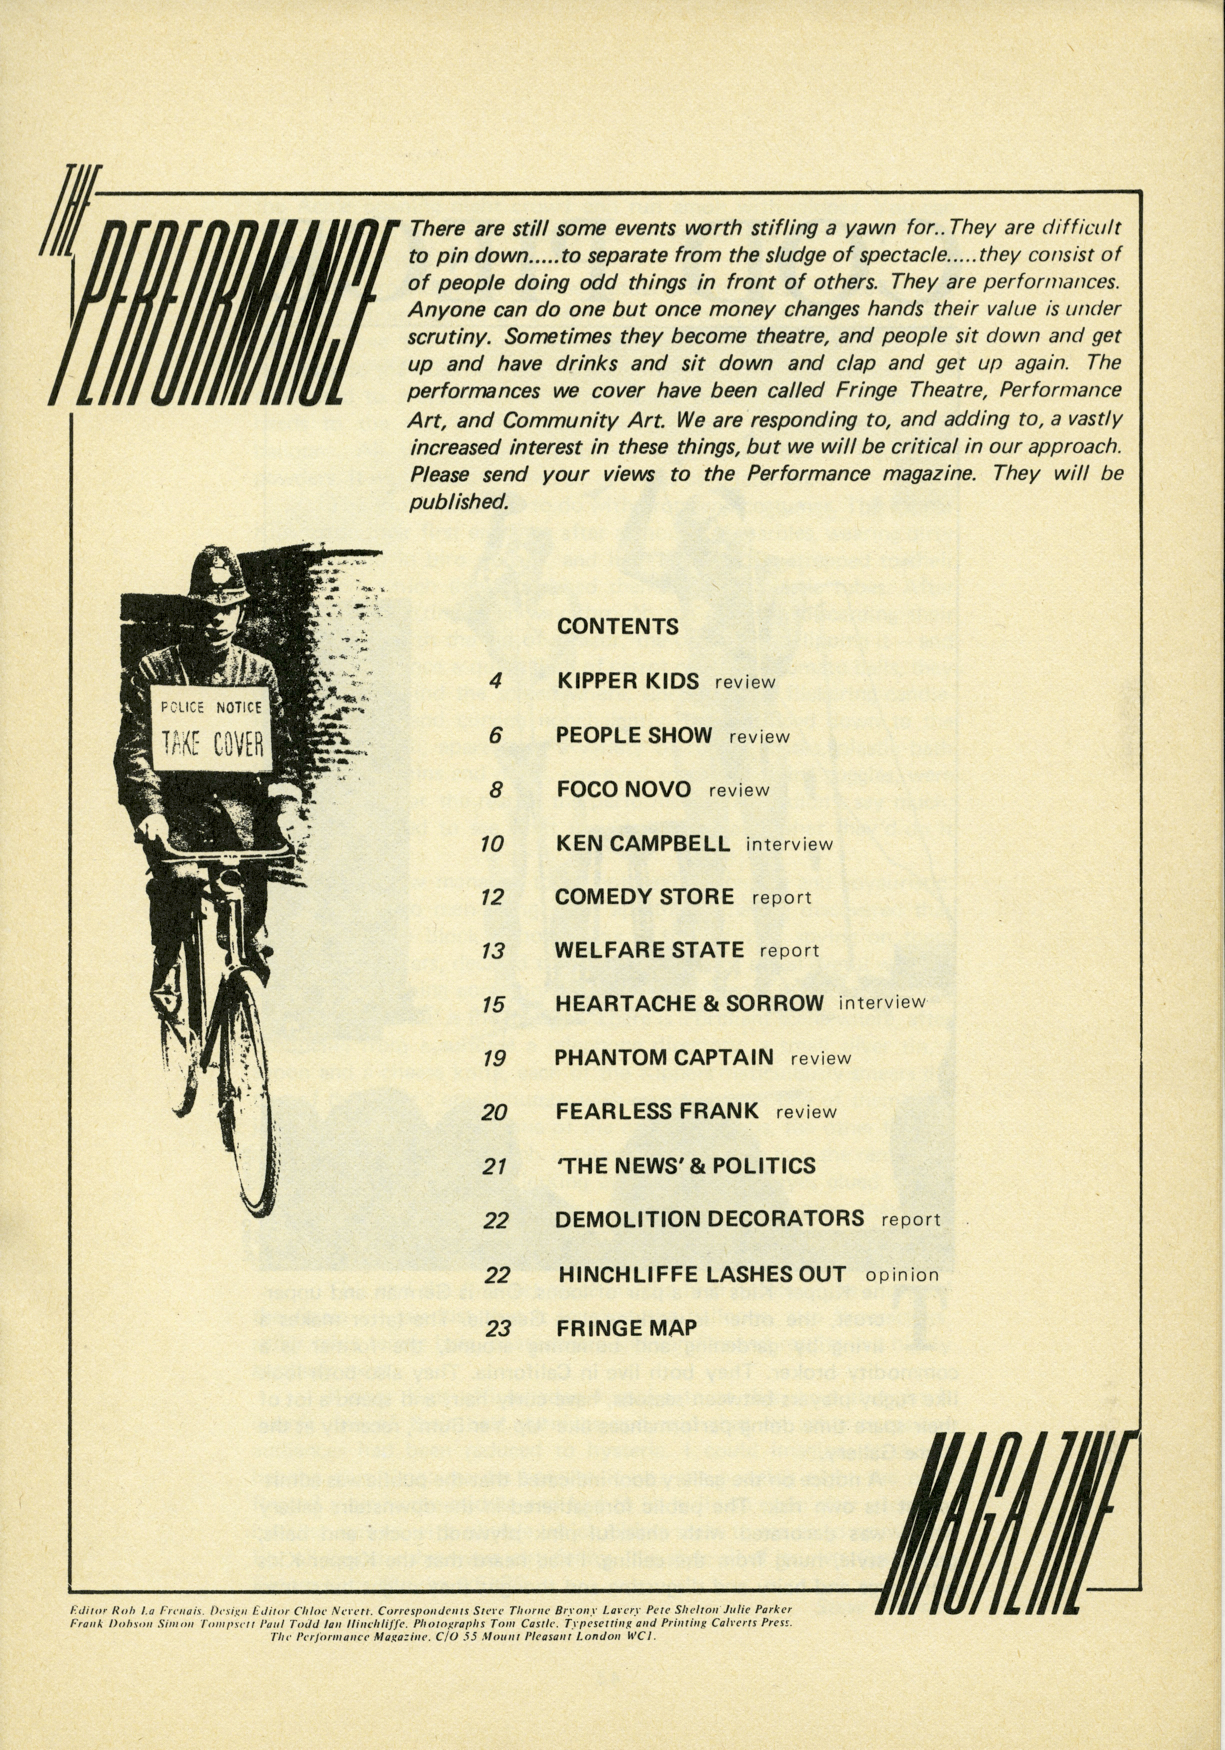 Image 1 - Page 2, Issue 1, 1979